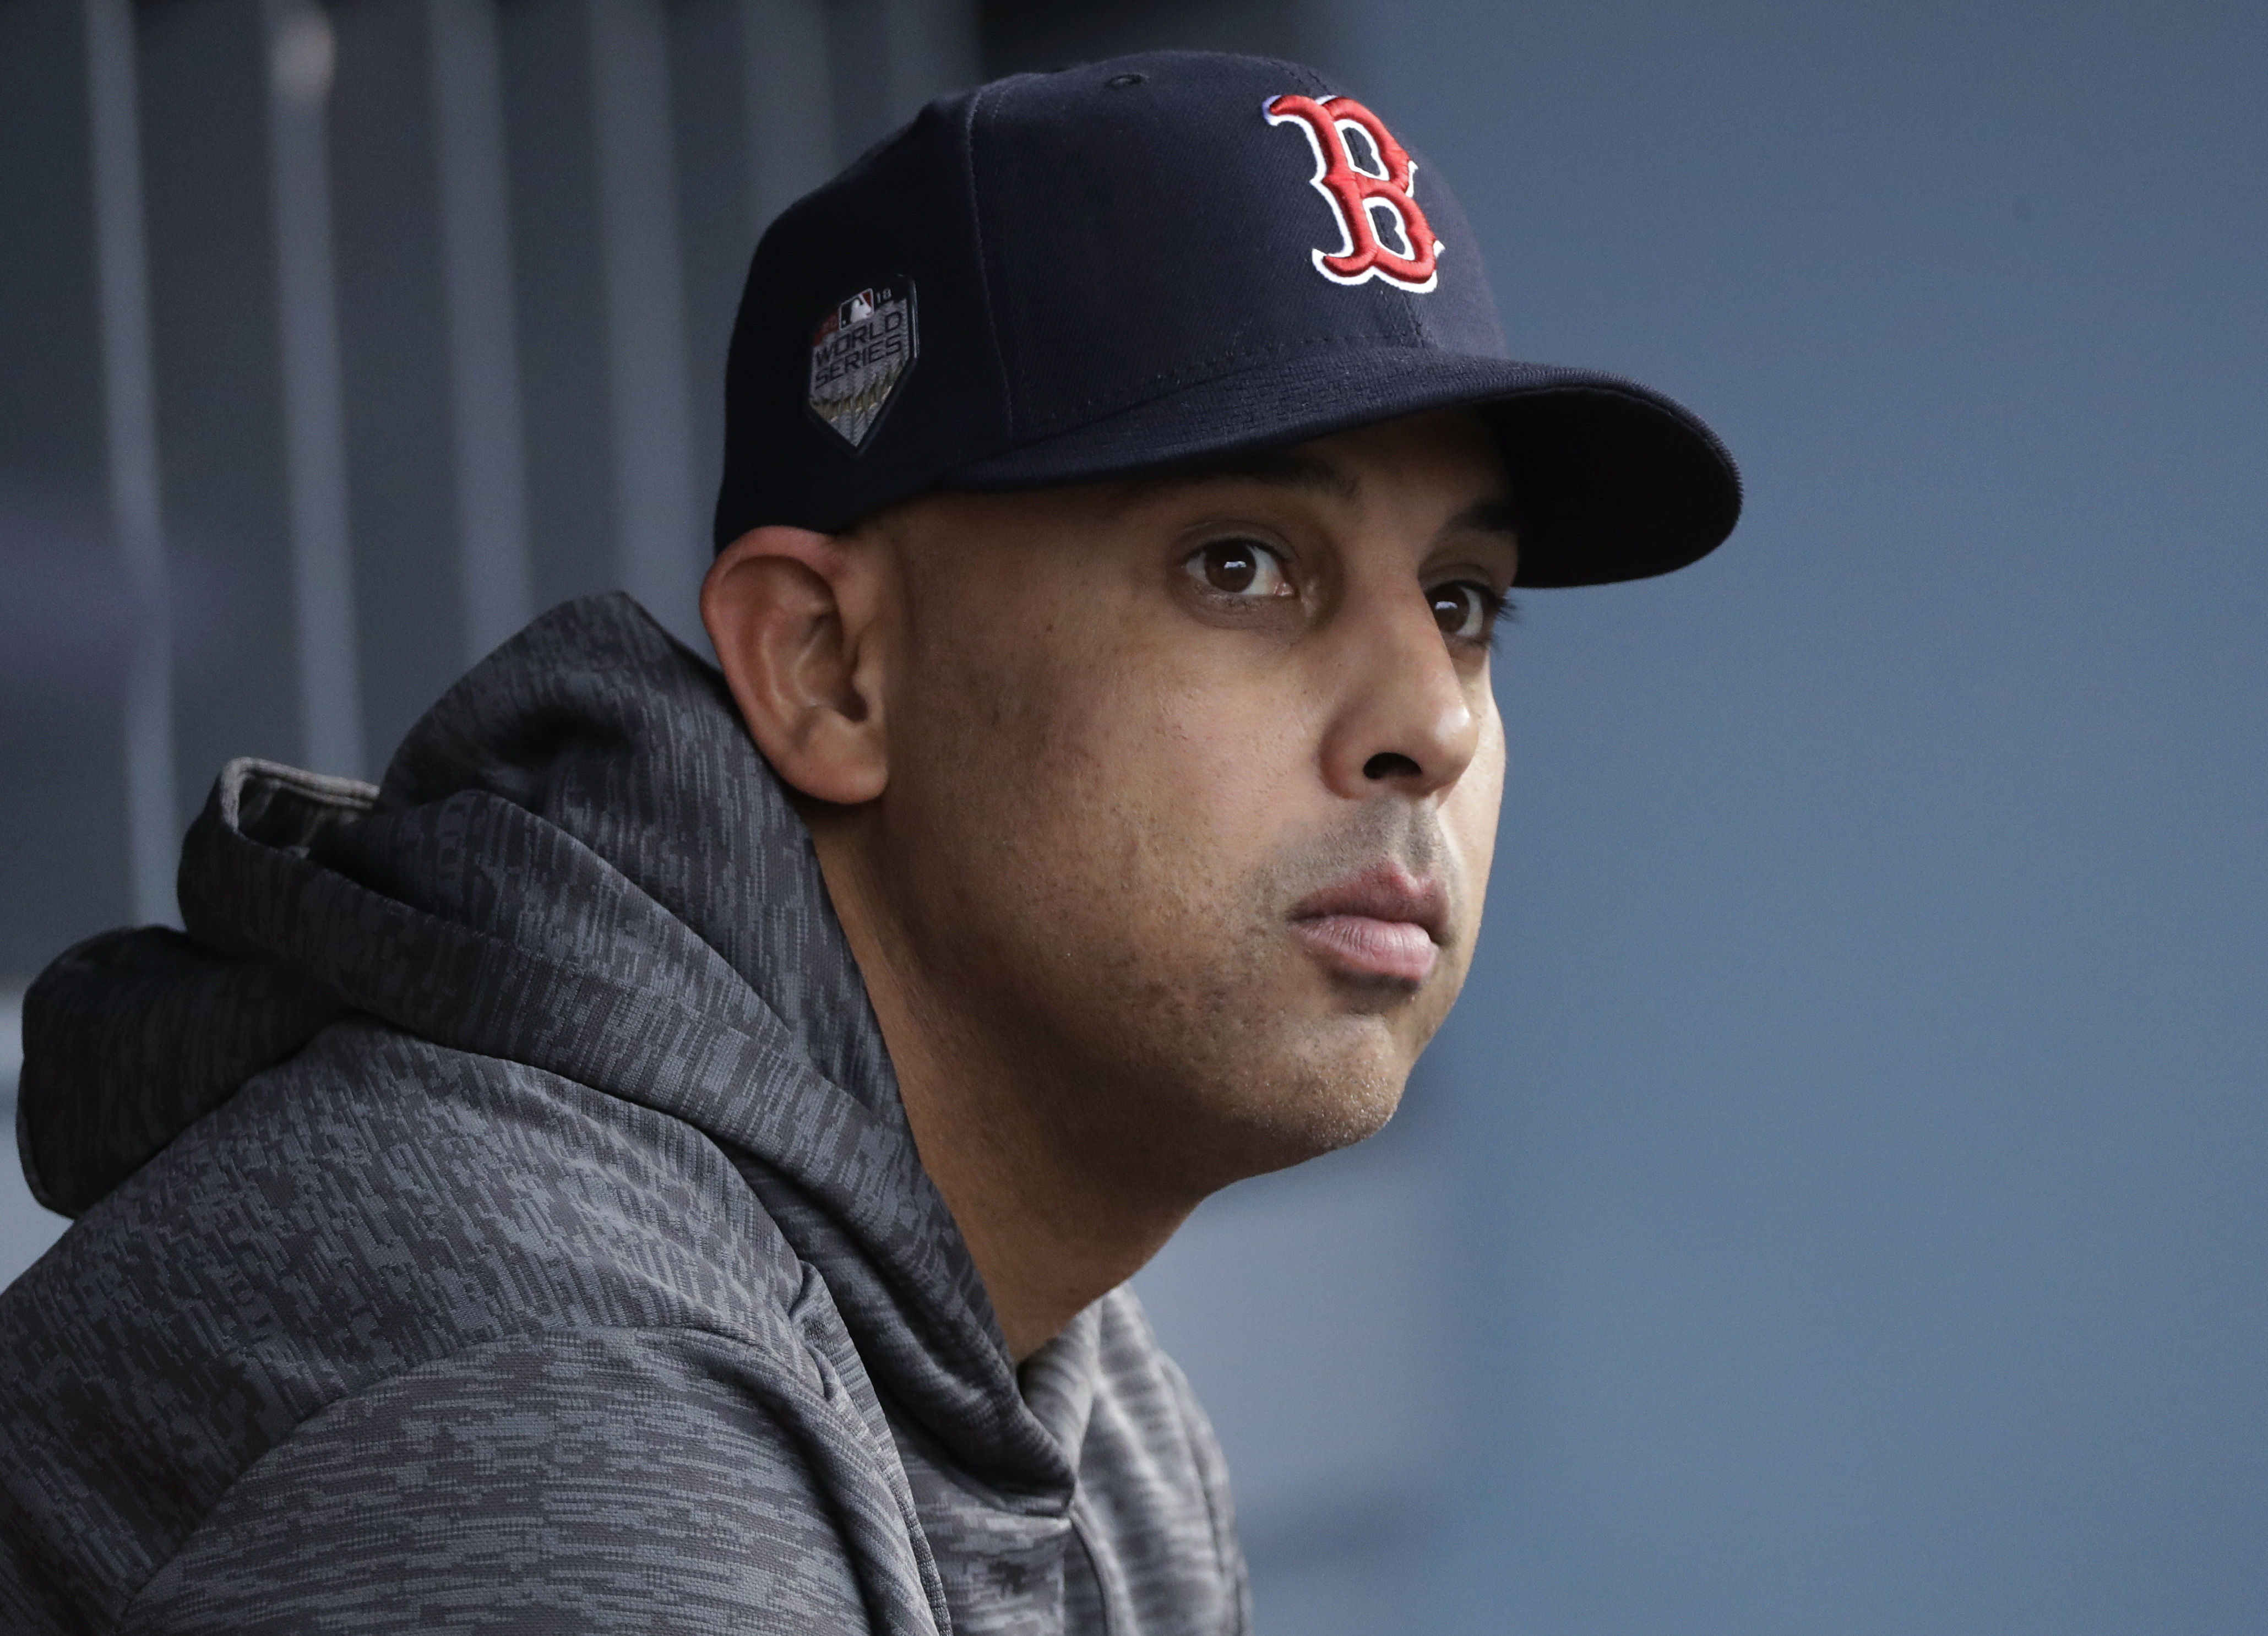 The Red Sox fired manager Alex Cora after he was implicated in the Houston Astros cheating scandal.